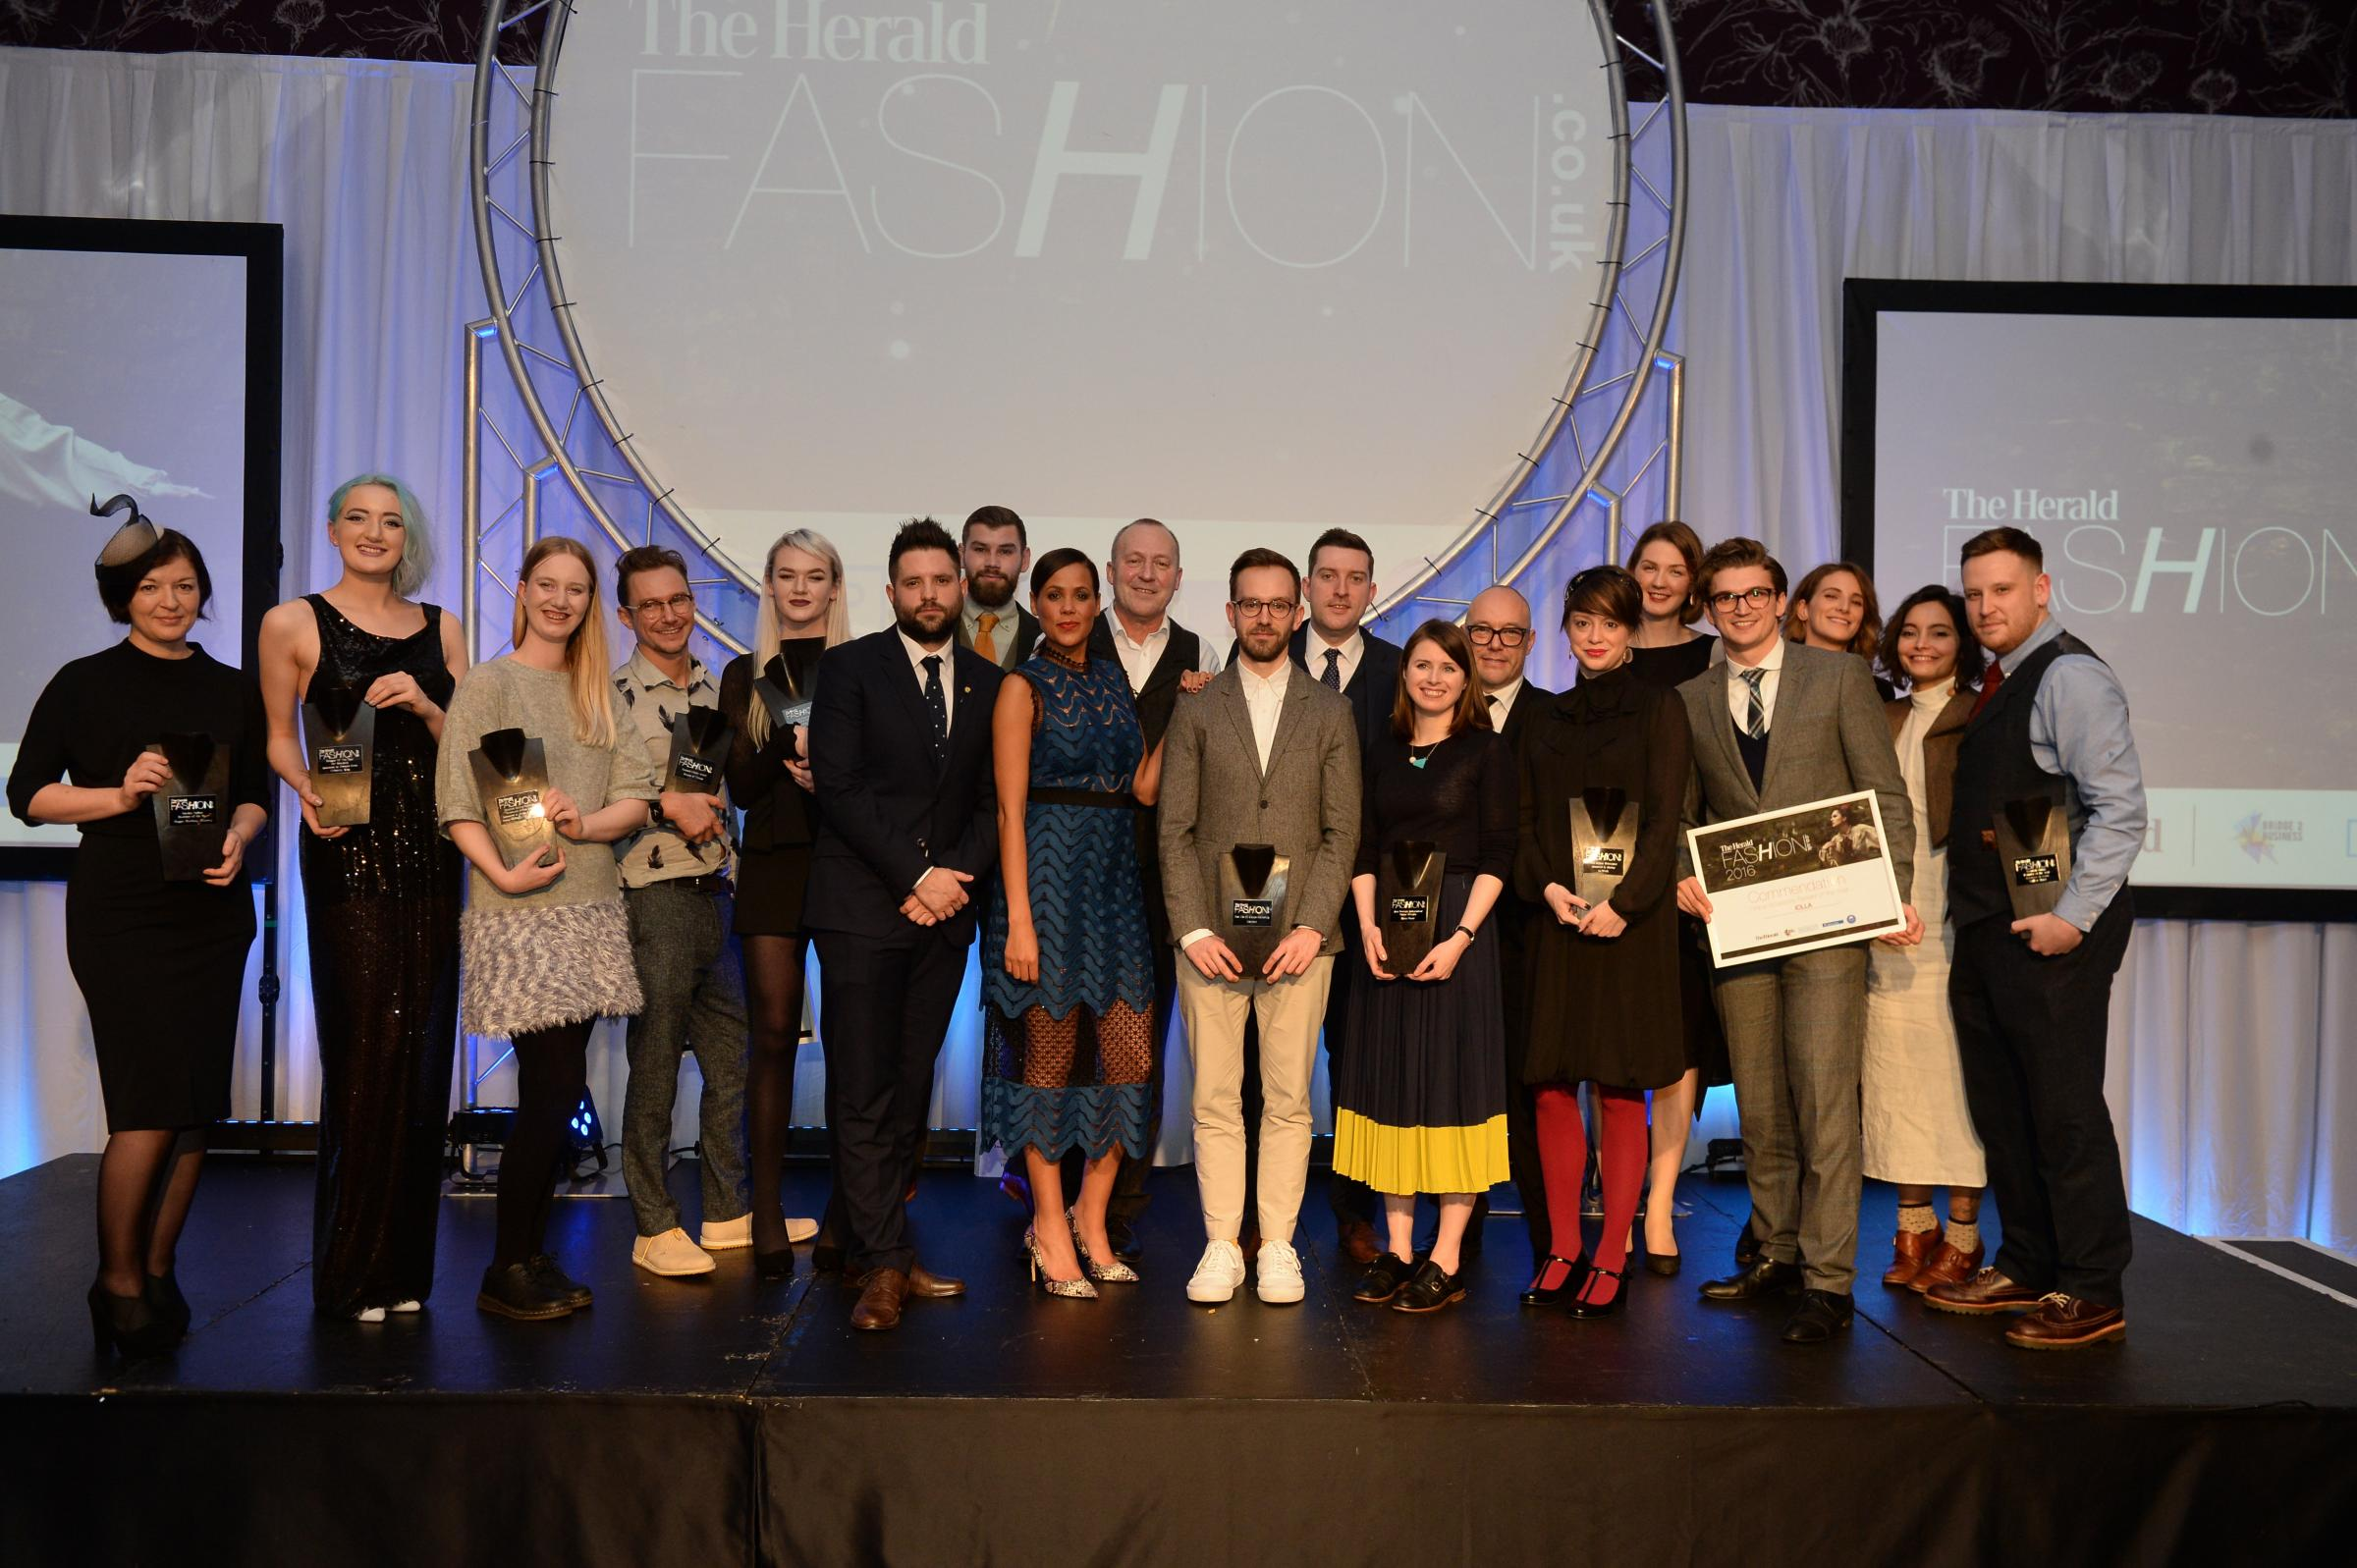 Winners on stage at last year's Herald Fashion Awards held at The Grand Central Hotel in Glasgow. Picture: Kirsty Anderson